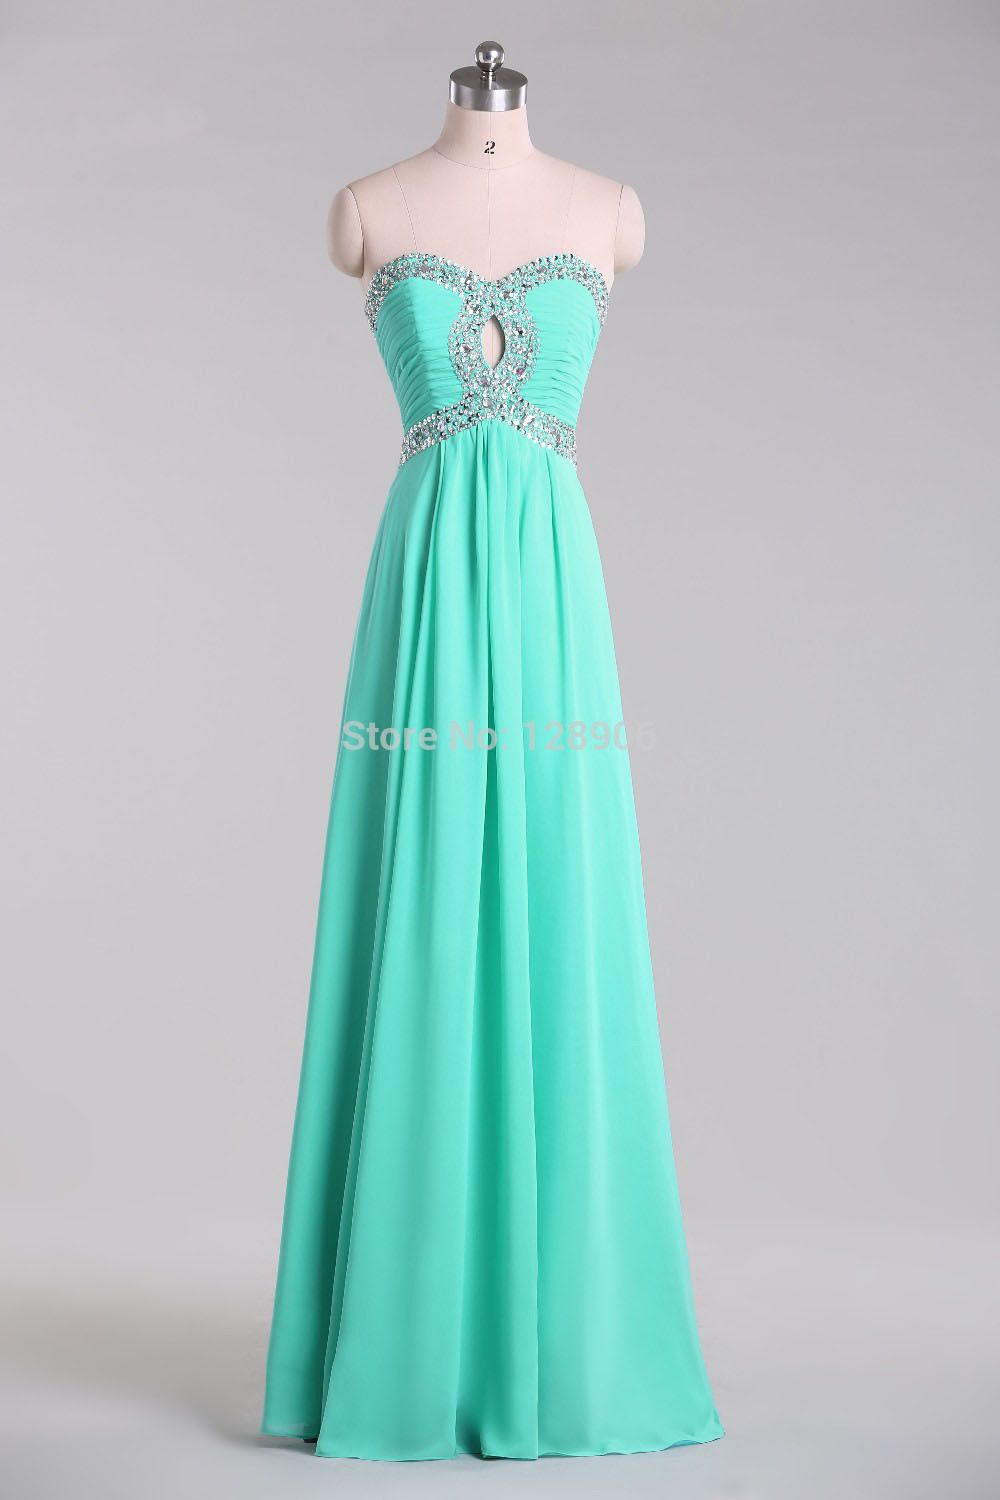 Hot on Sale Mint Green Prom Dress 2015 Sweetheart Beaded Sequins ...